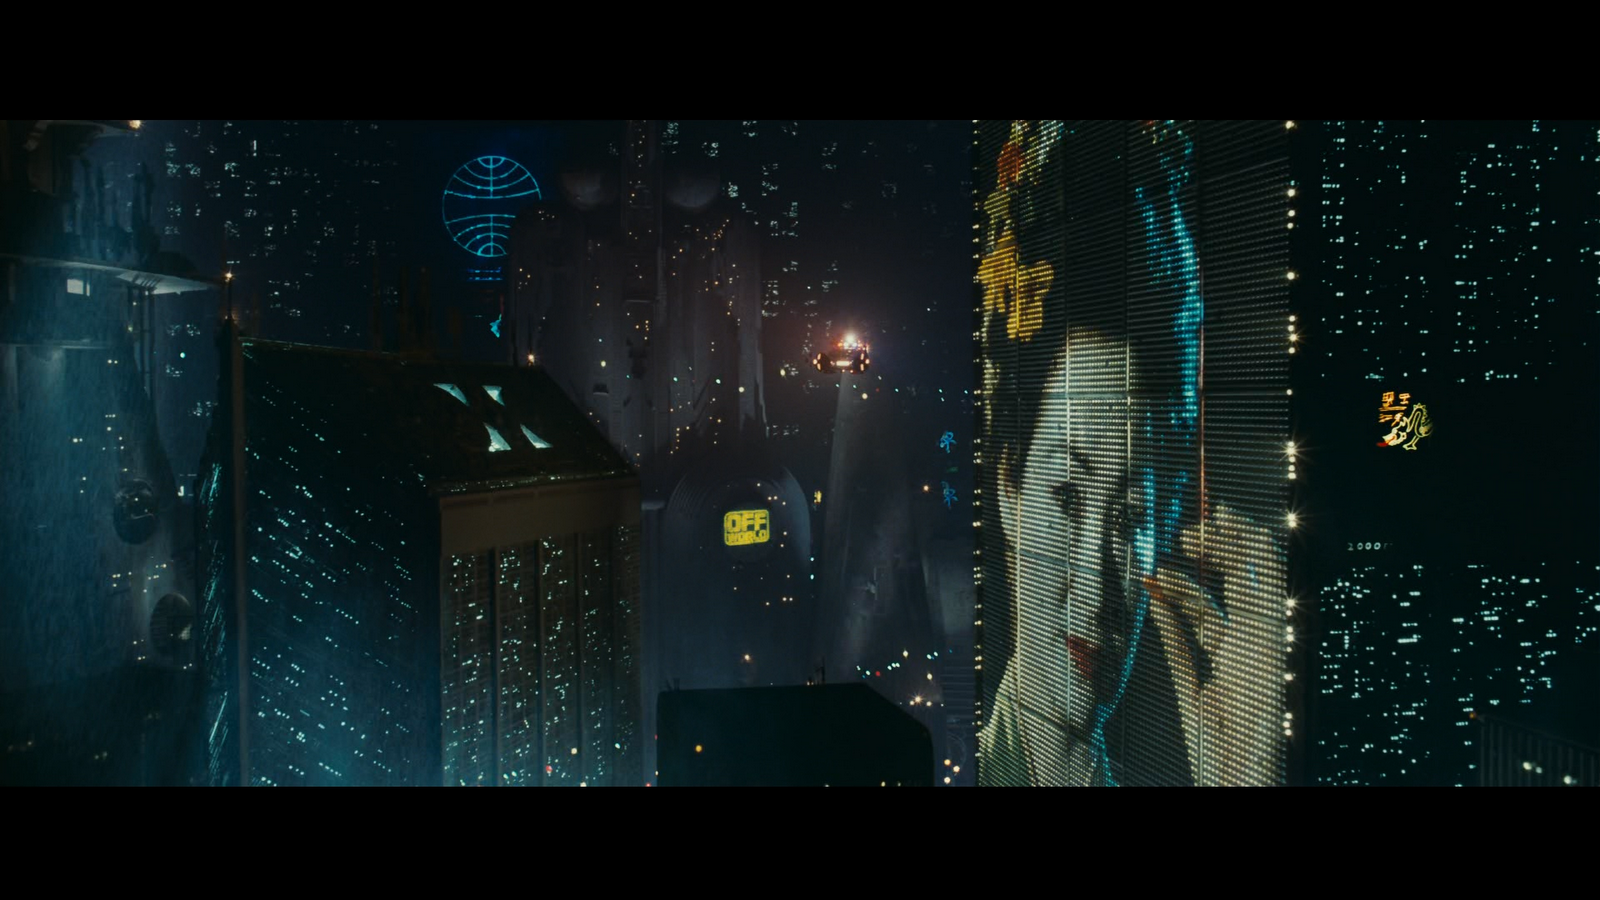 Collective movie love for Blade runner